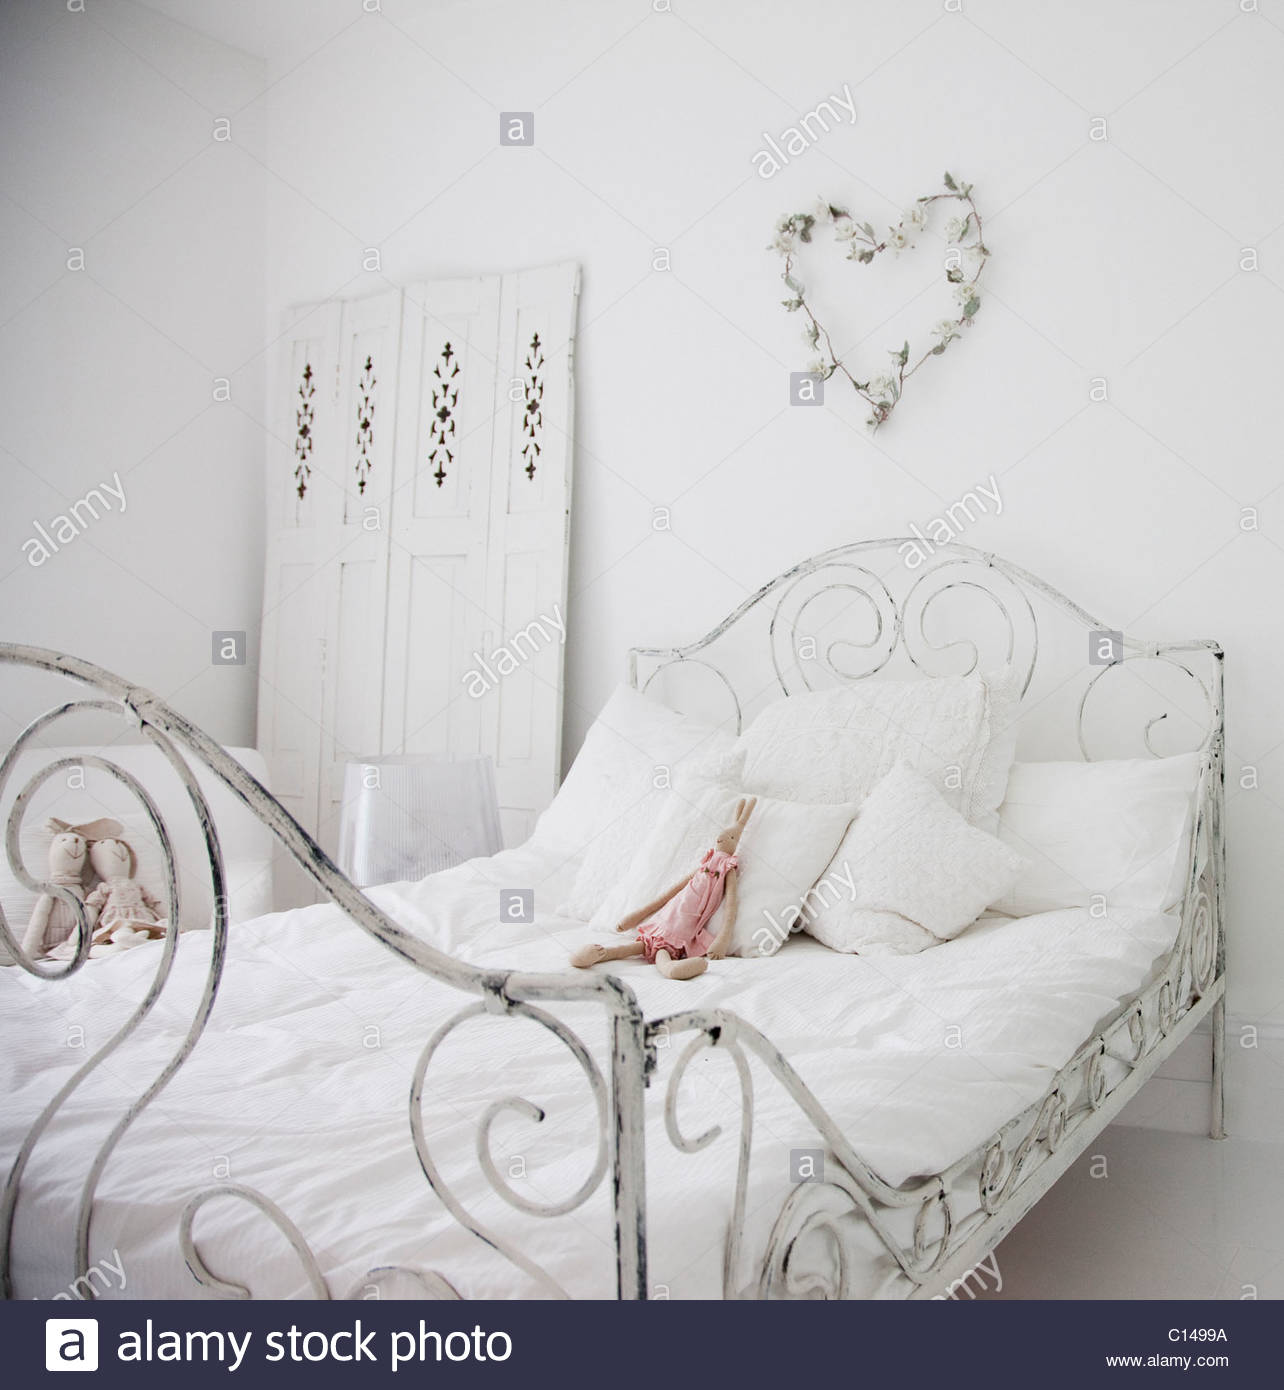 Vintage Bed Stock Photos & Vintage Bed Stock Images - Alamy